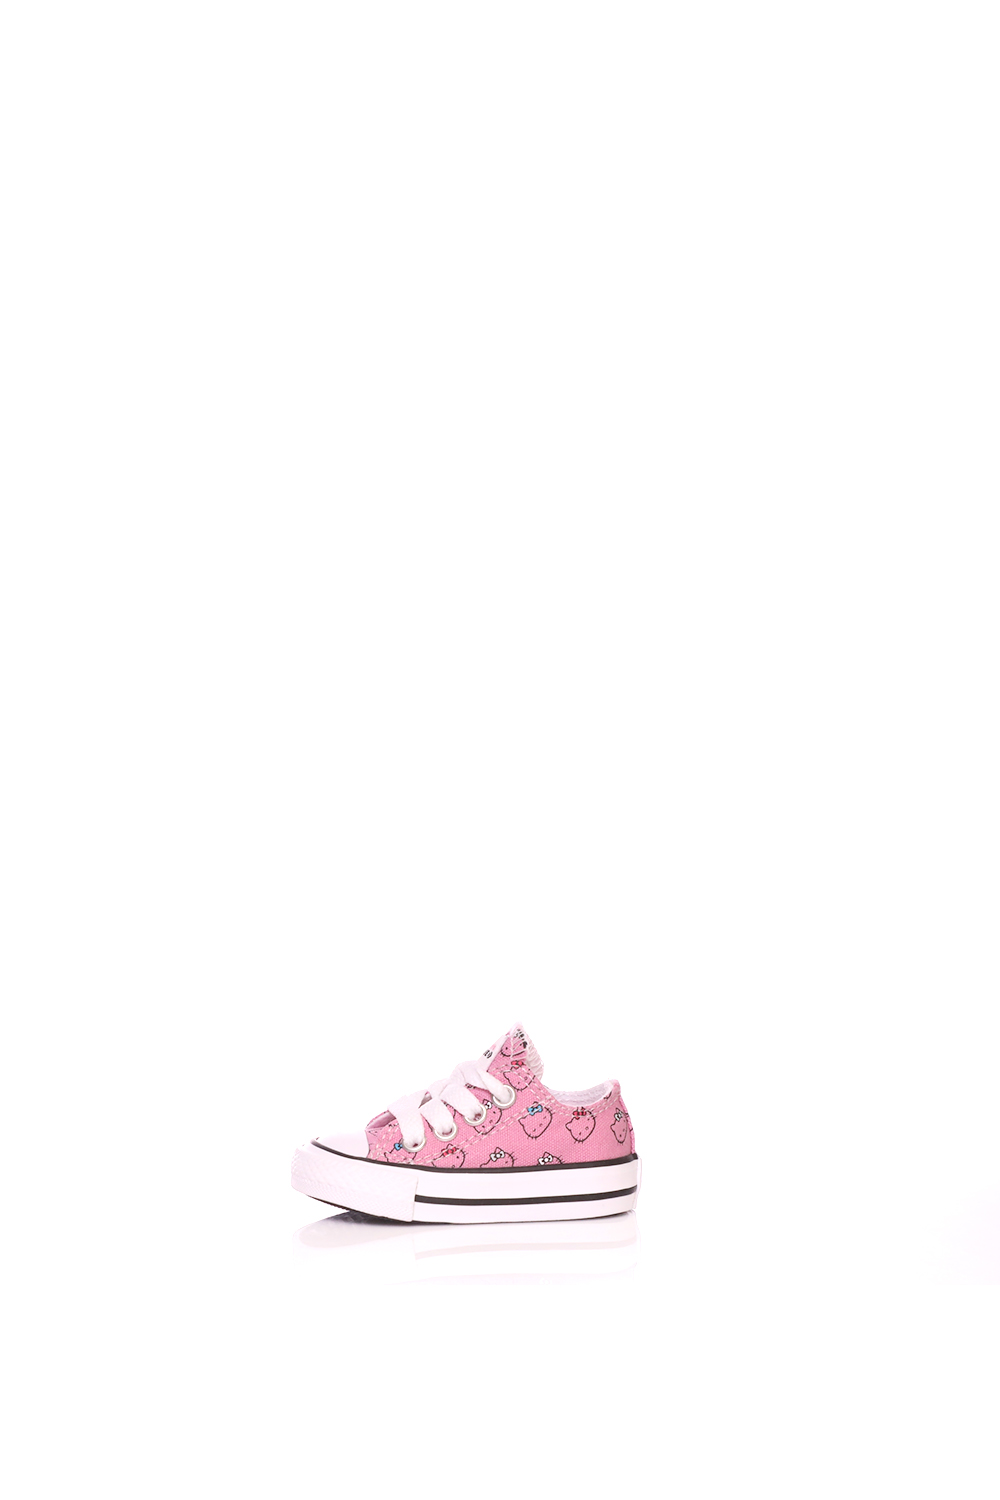 1281f5cd27d Collective Online CONVERSE – Βρεφικά παπούτσια Converse X Hello Kitty Chuck  Taylor All Star ροζ